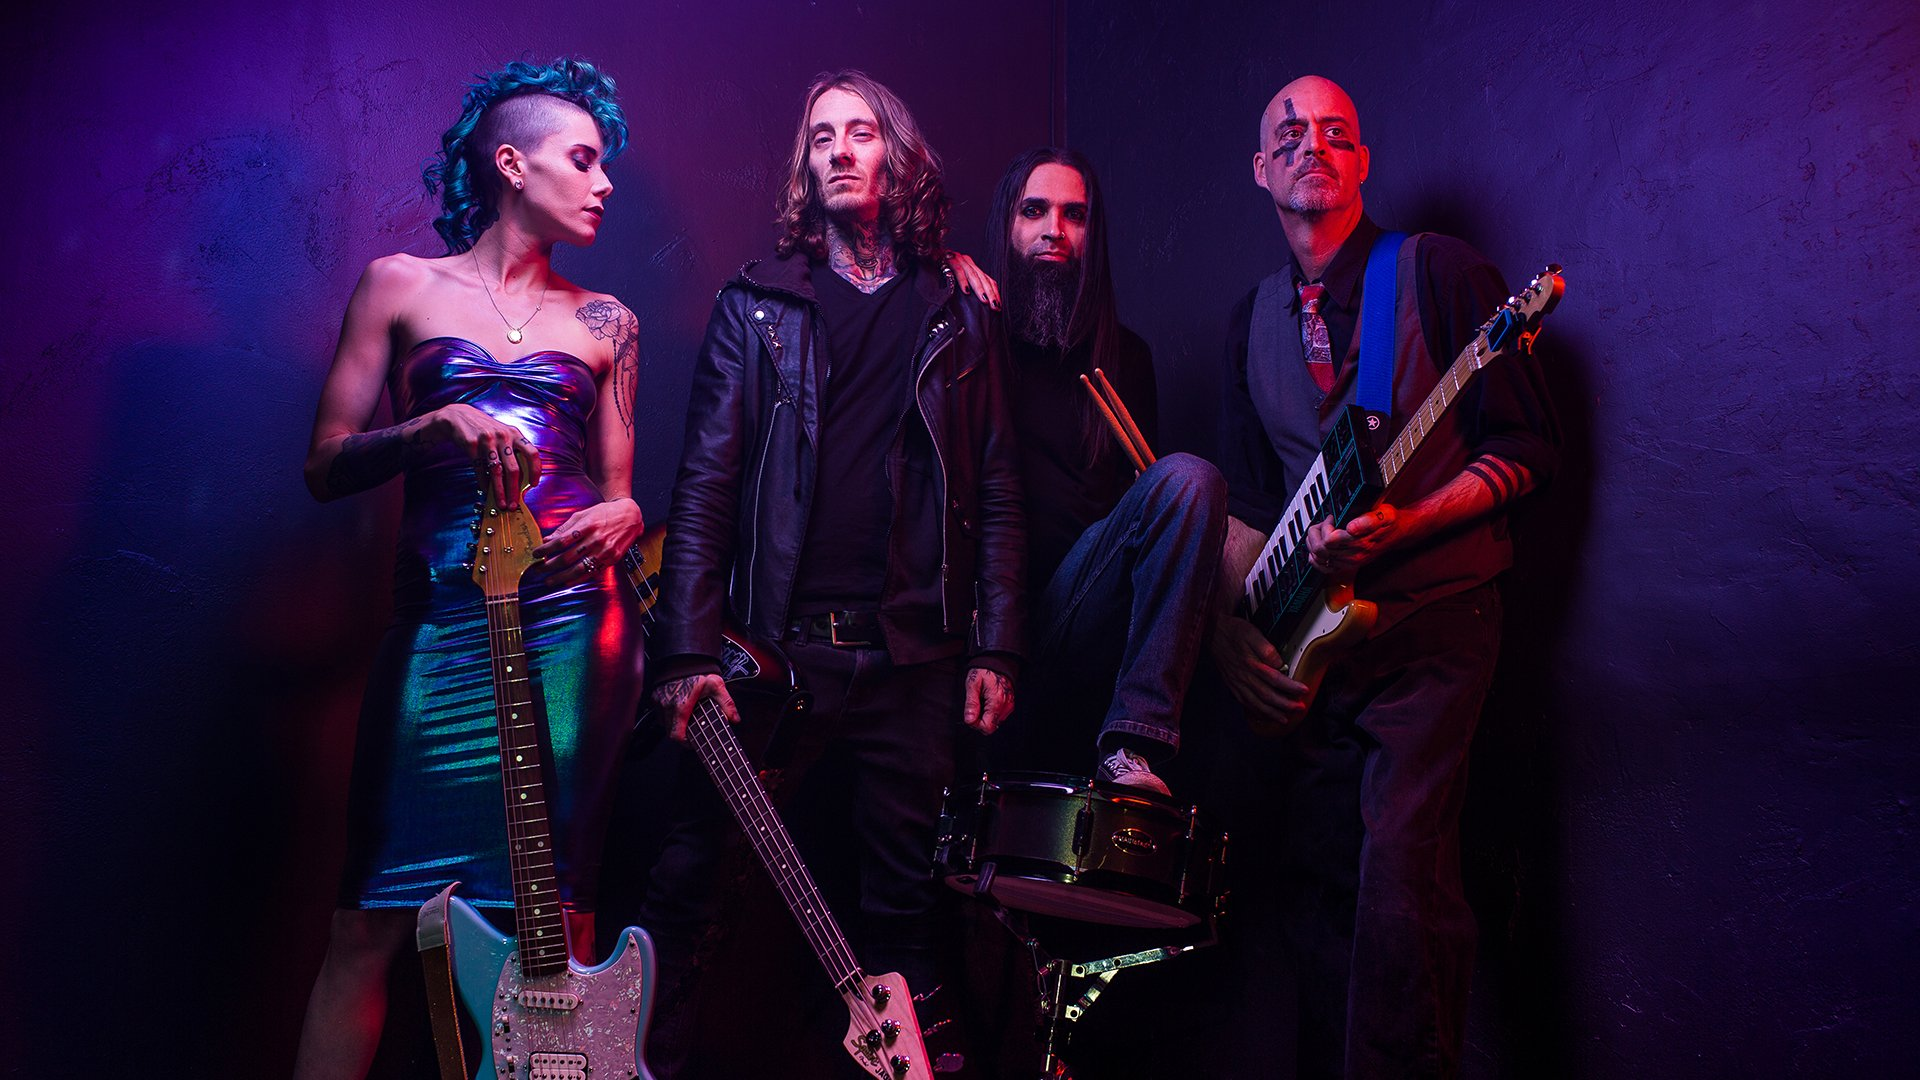 synth punk band cobress posing with instruments